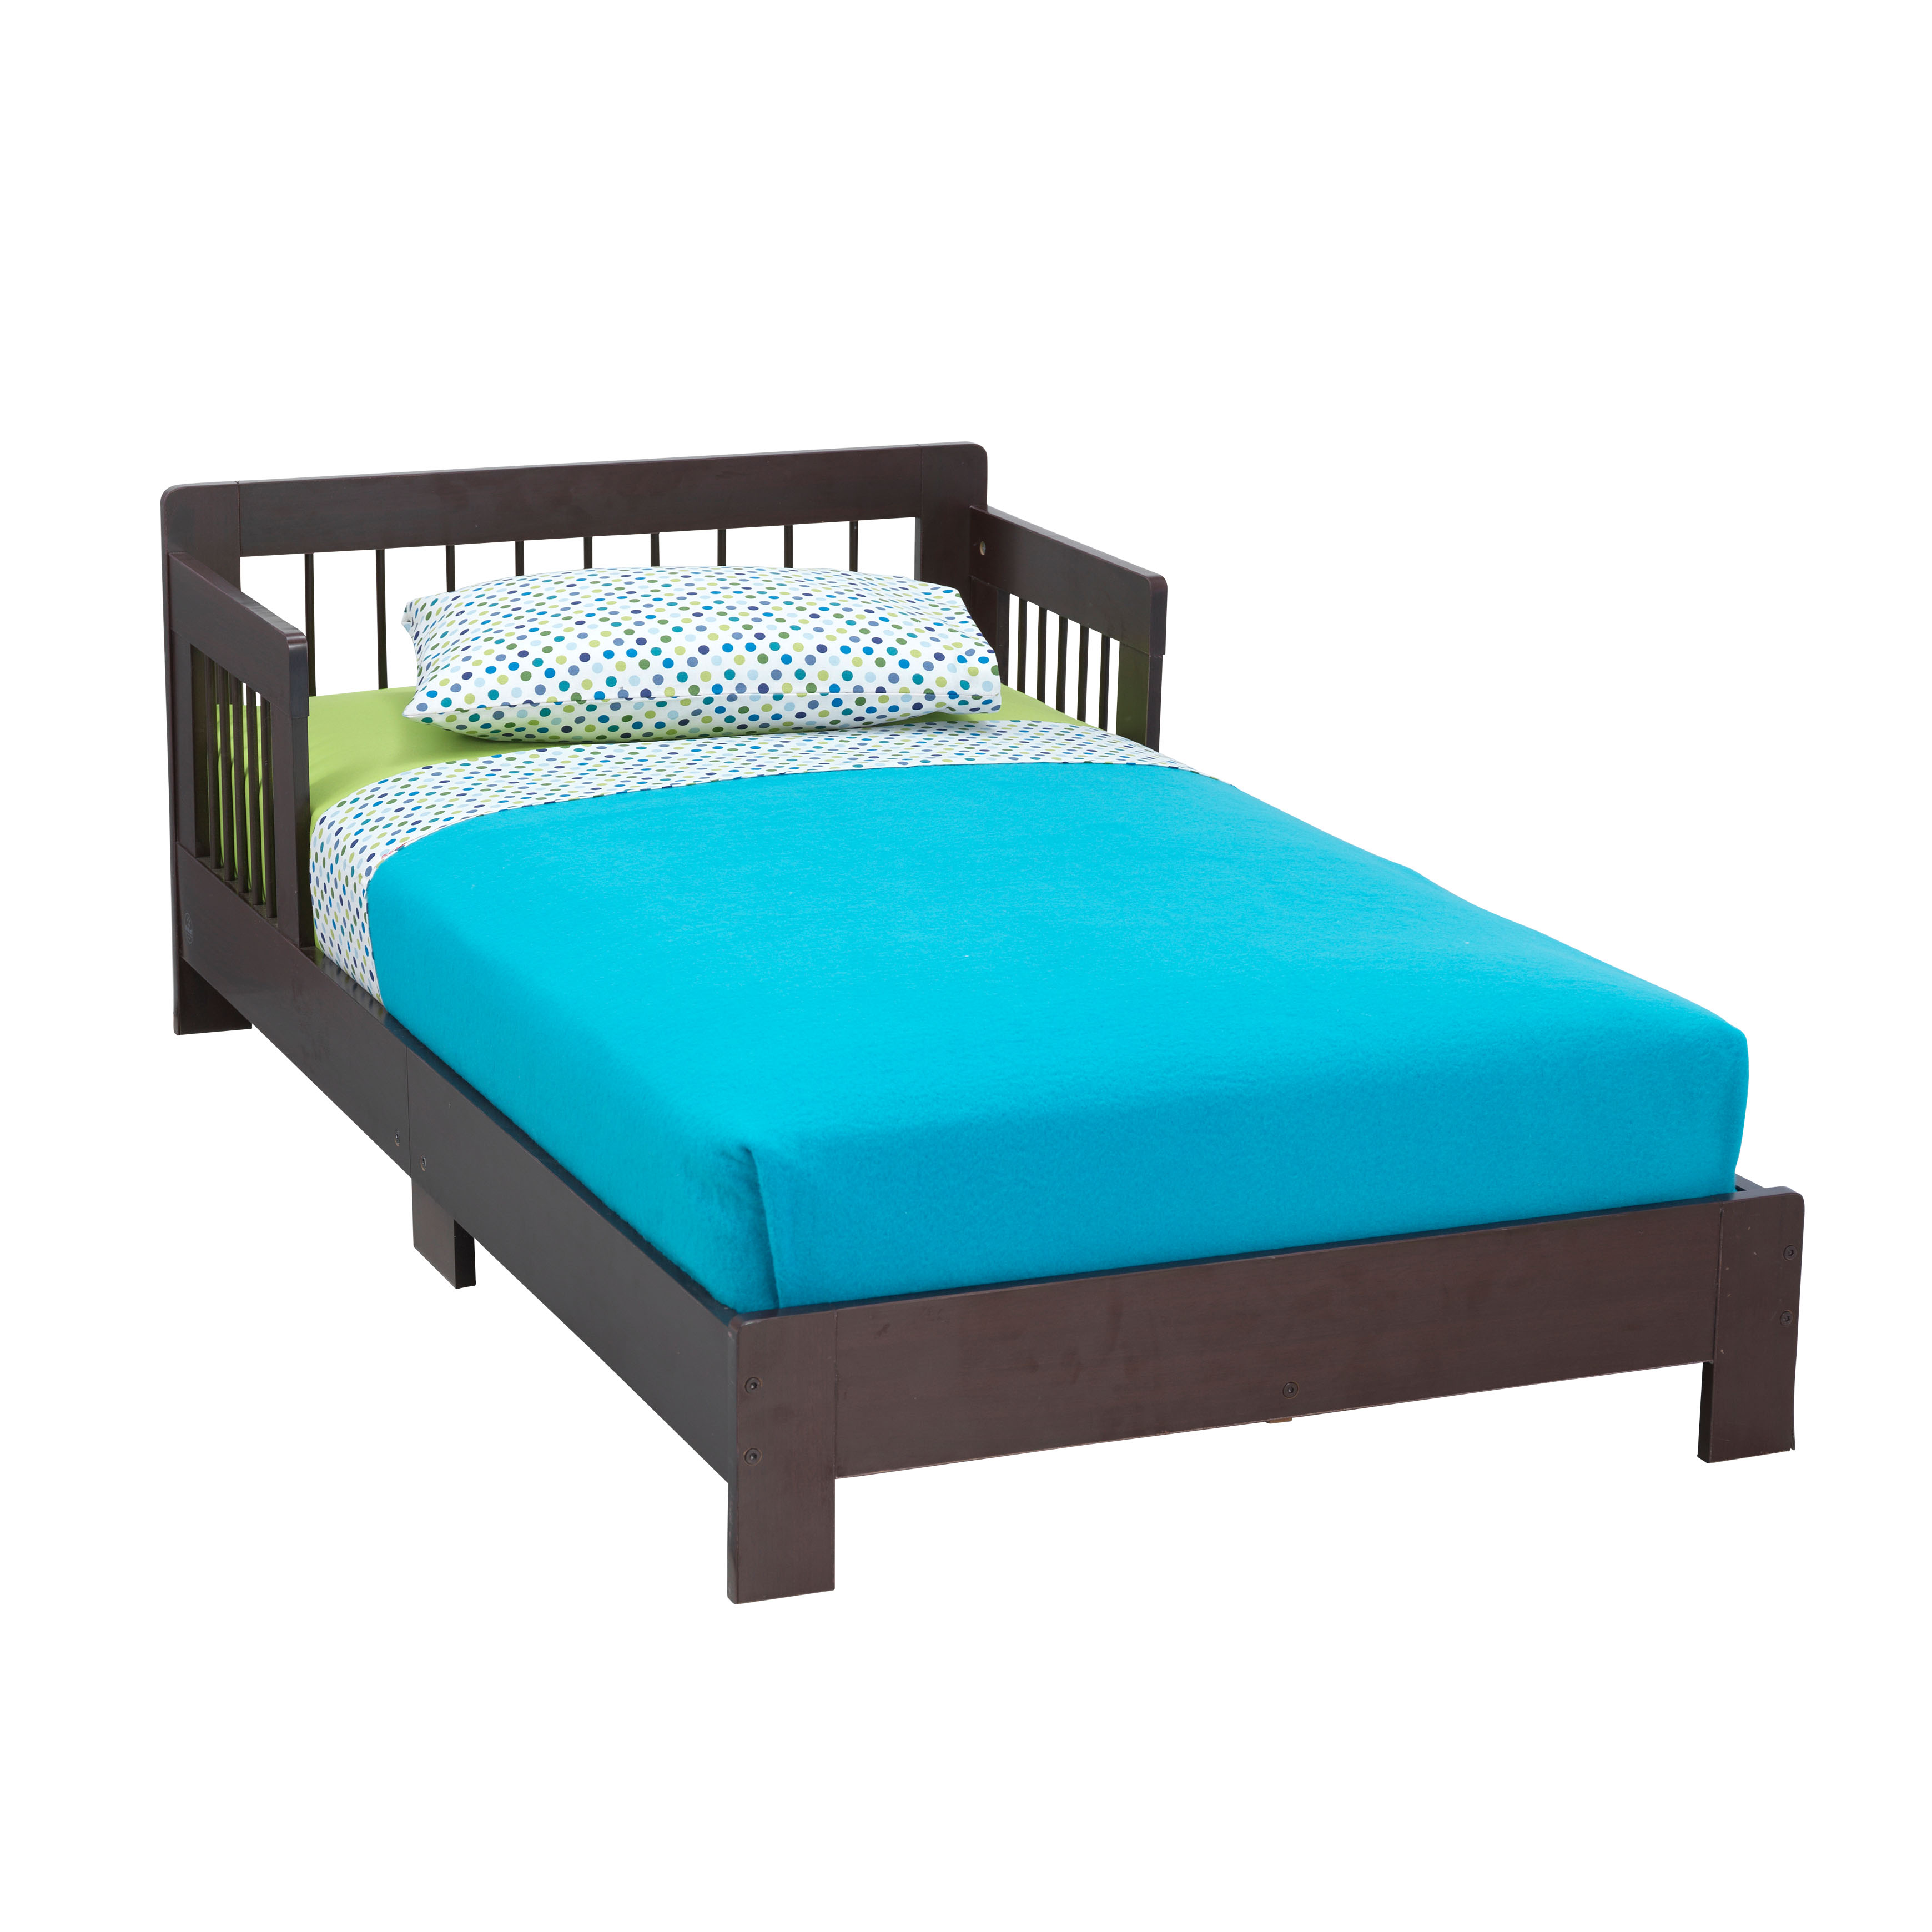 KidKraft Houston Wooden Toddler Bed with Side Rails and Spindle Headboard - Espresso